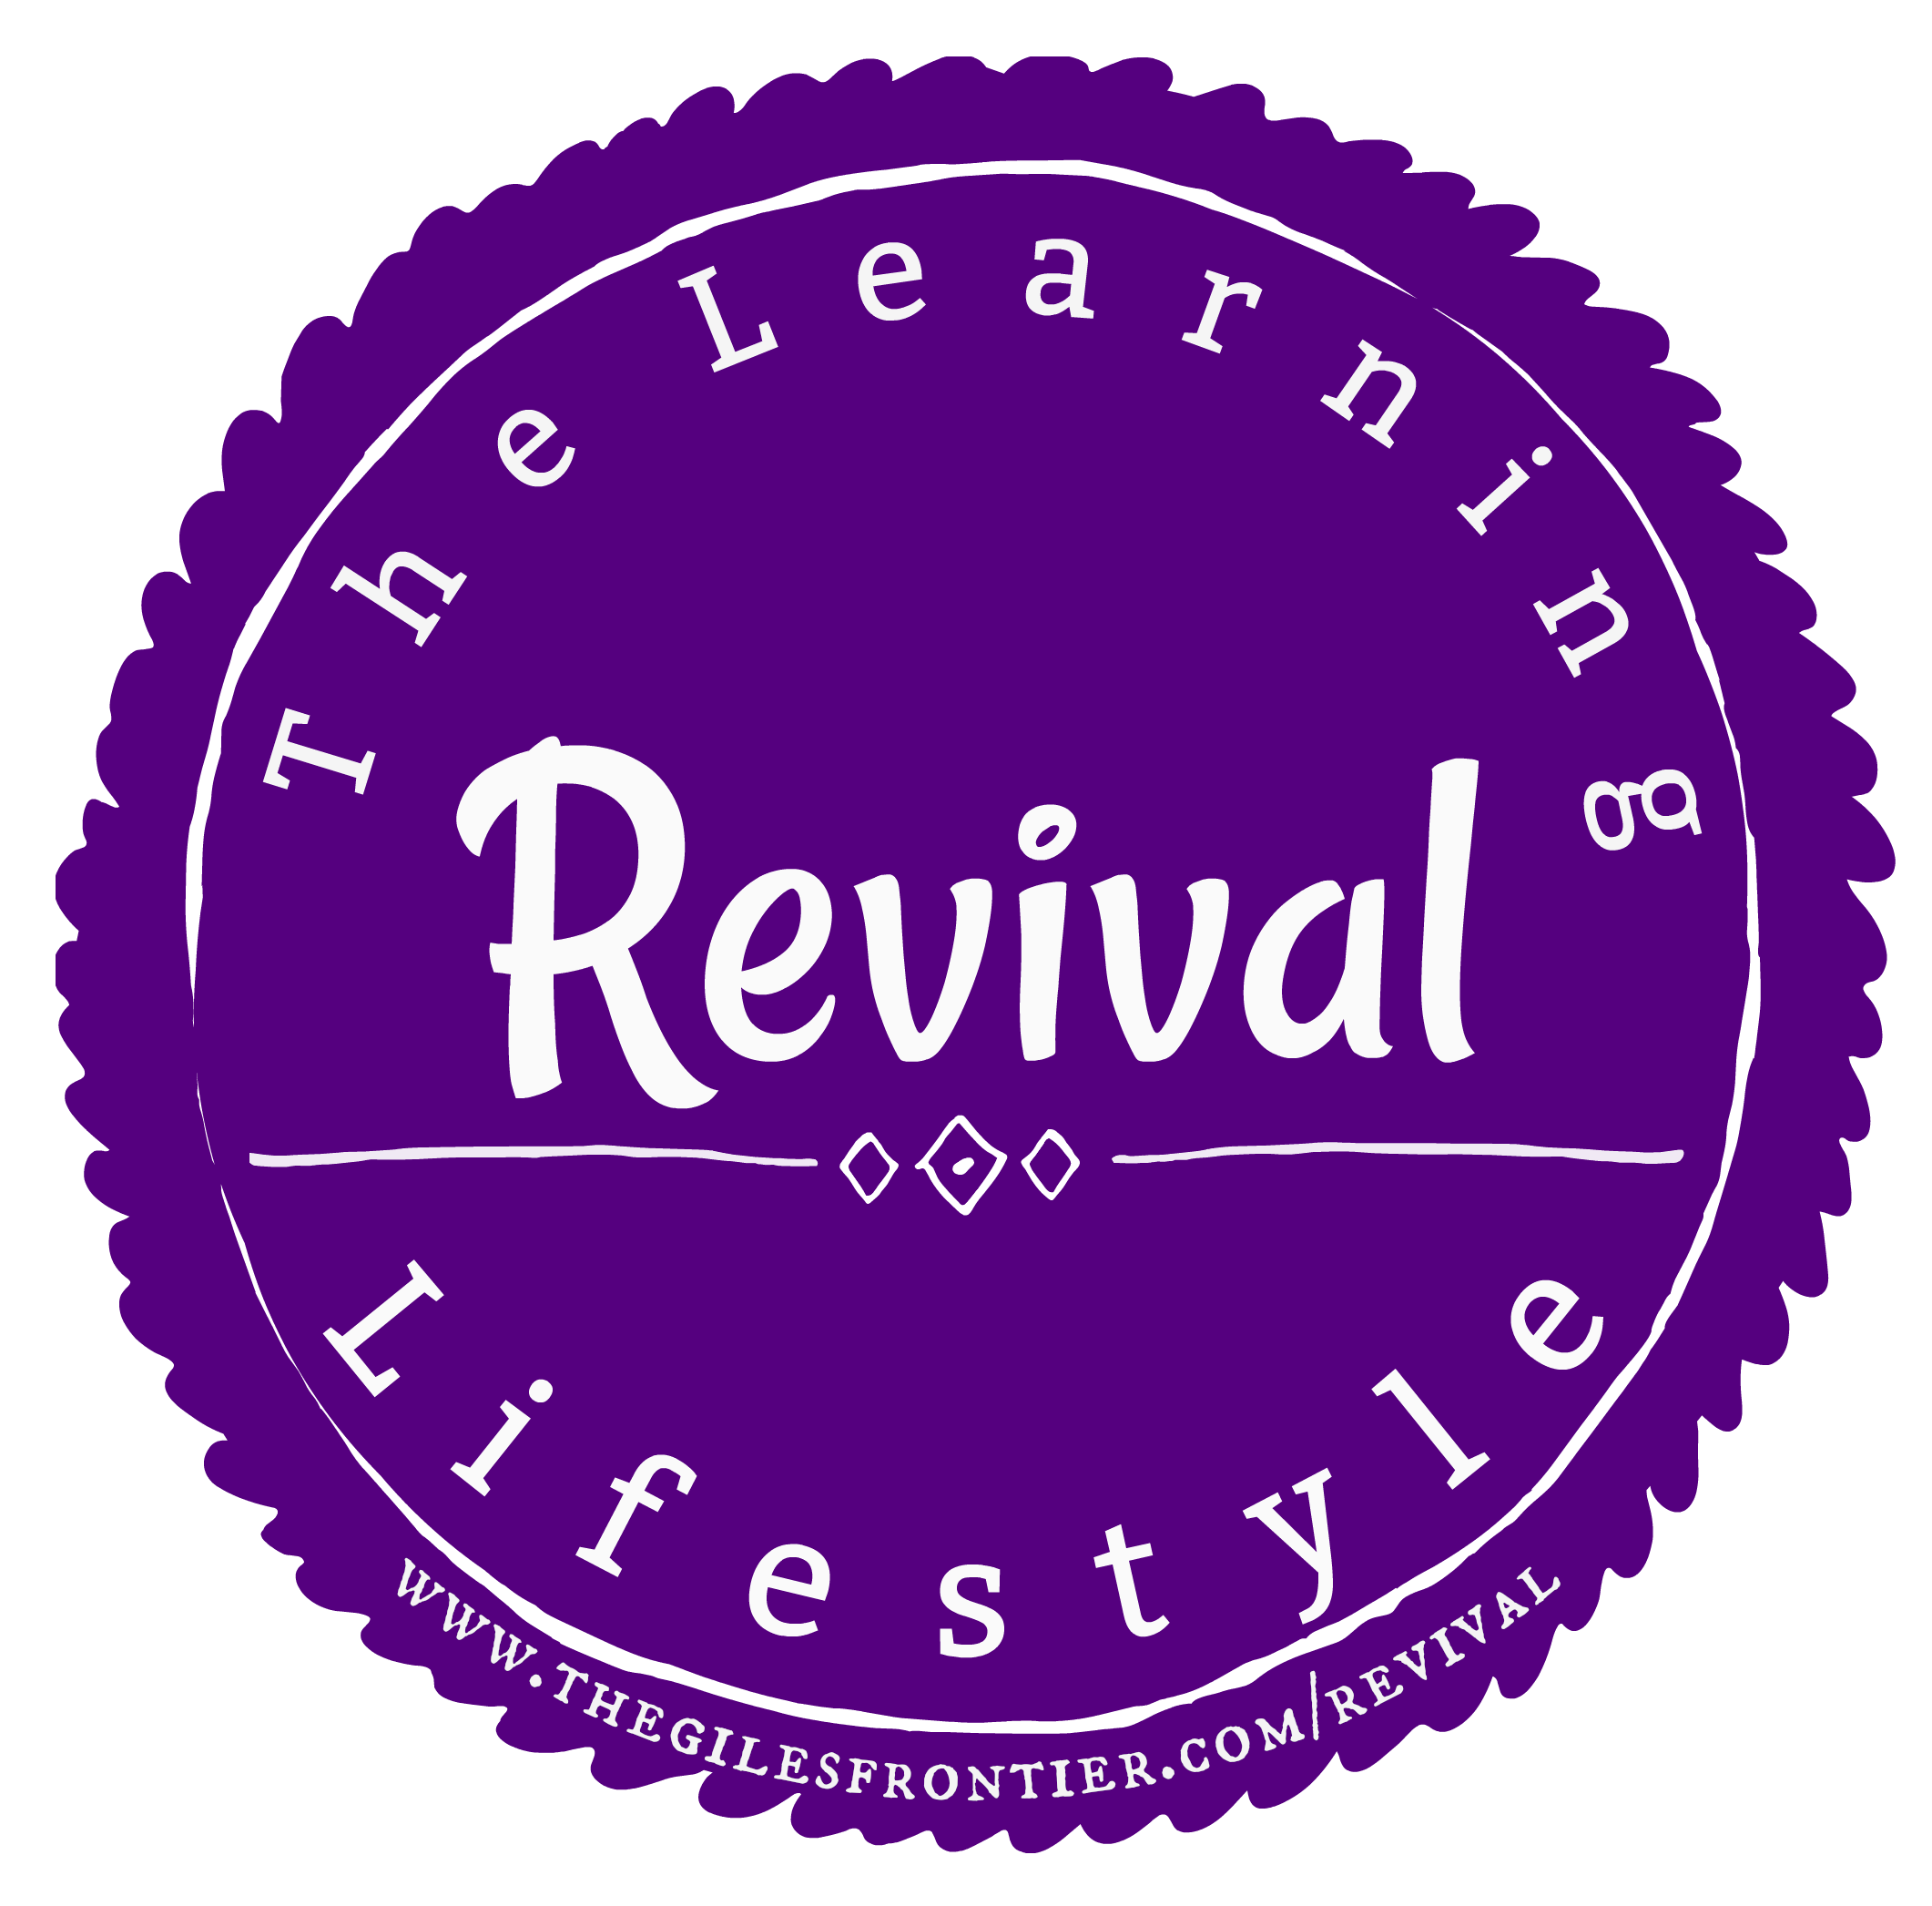 The Learning Lifestyle Revival